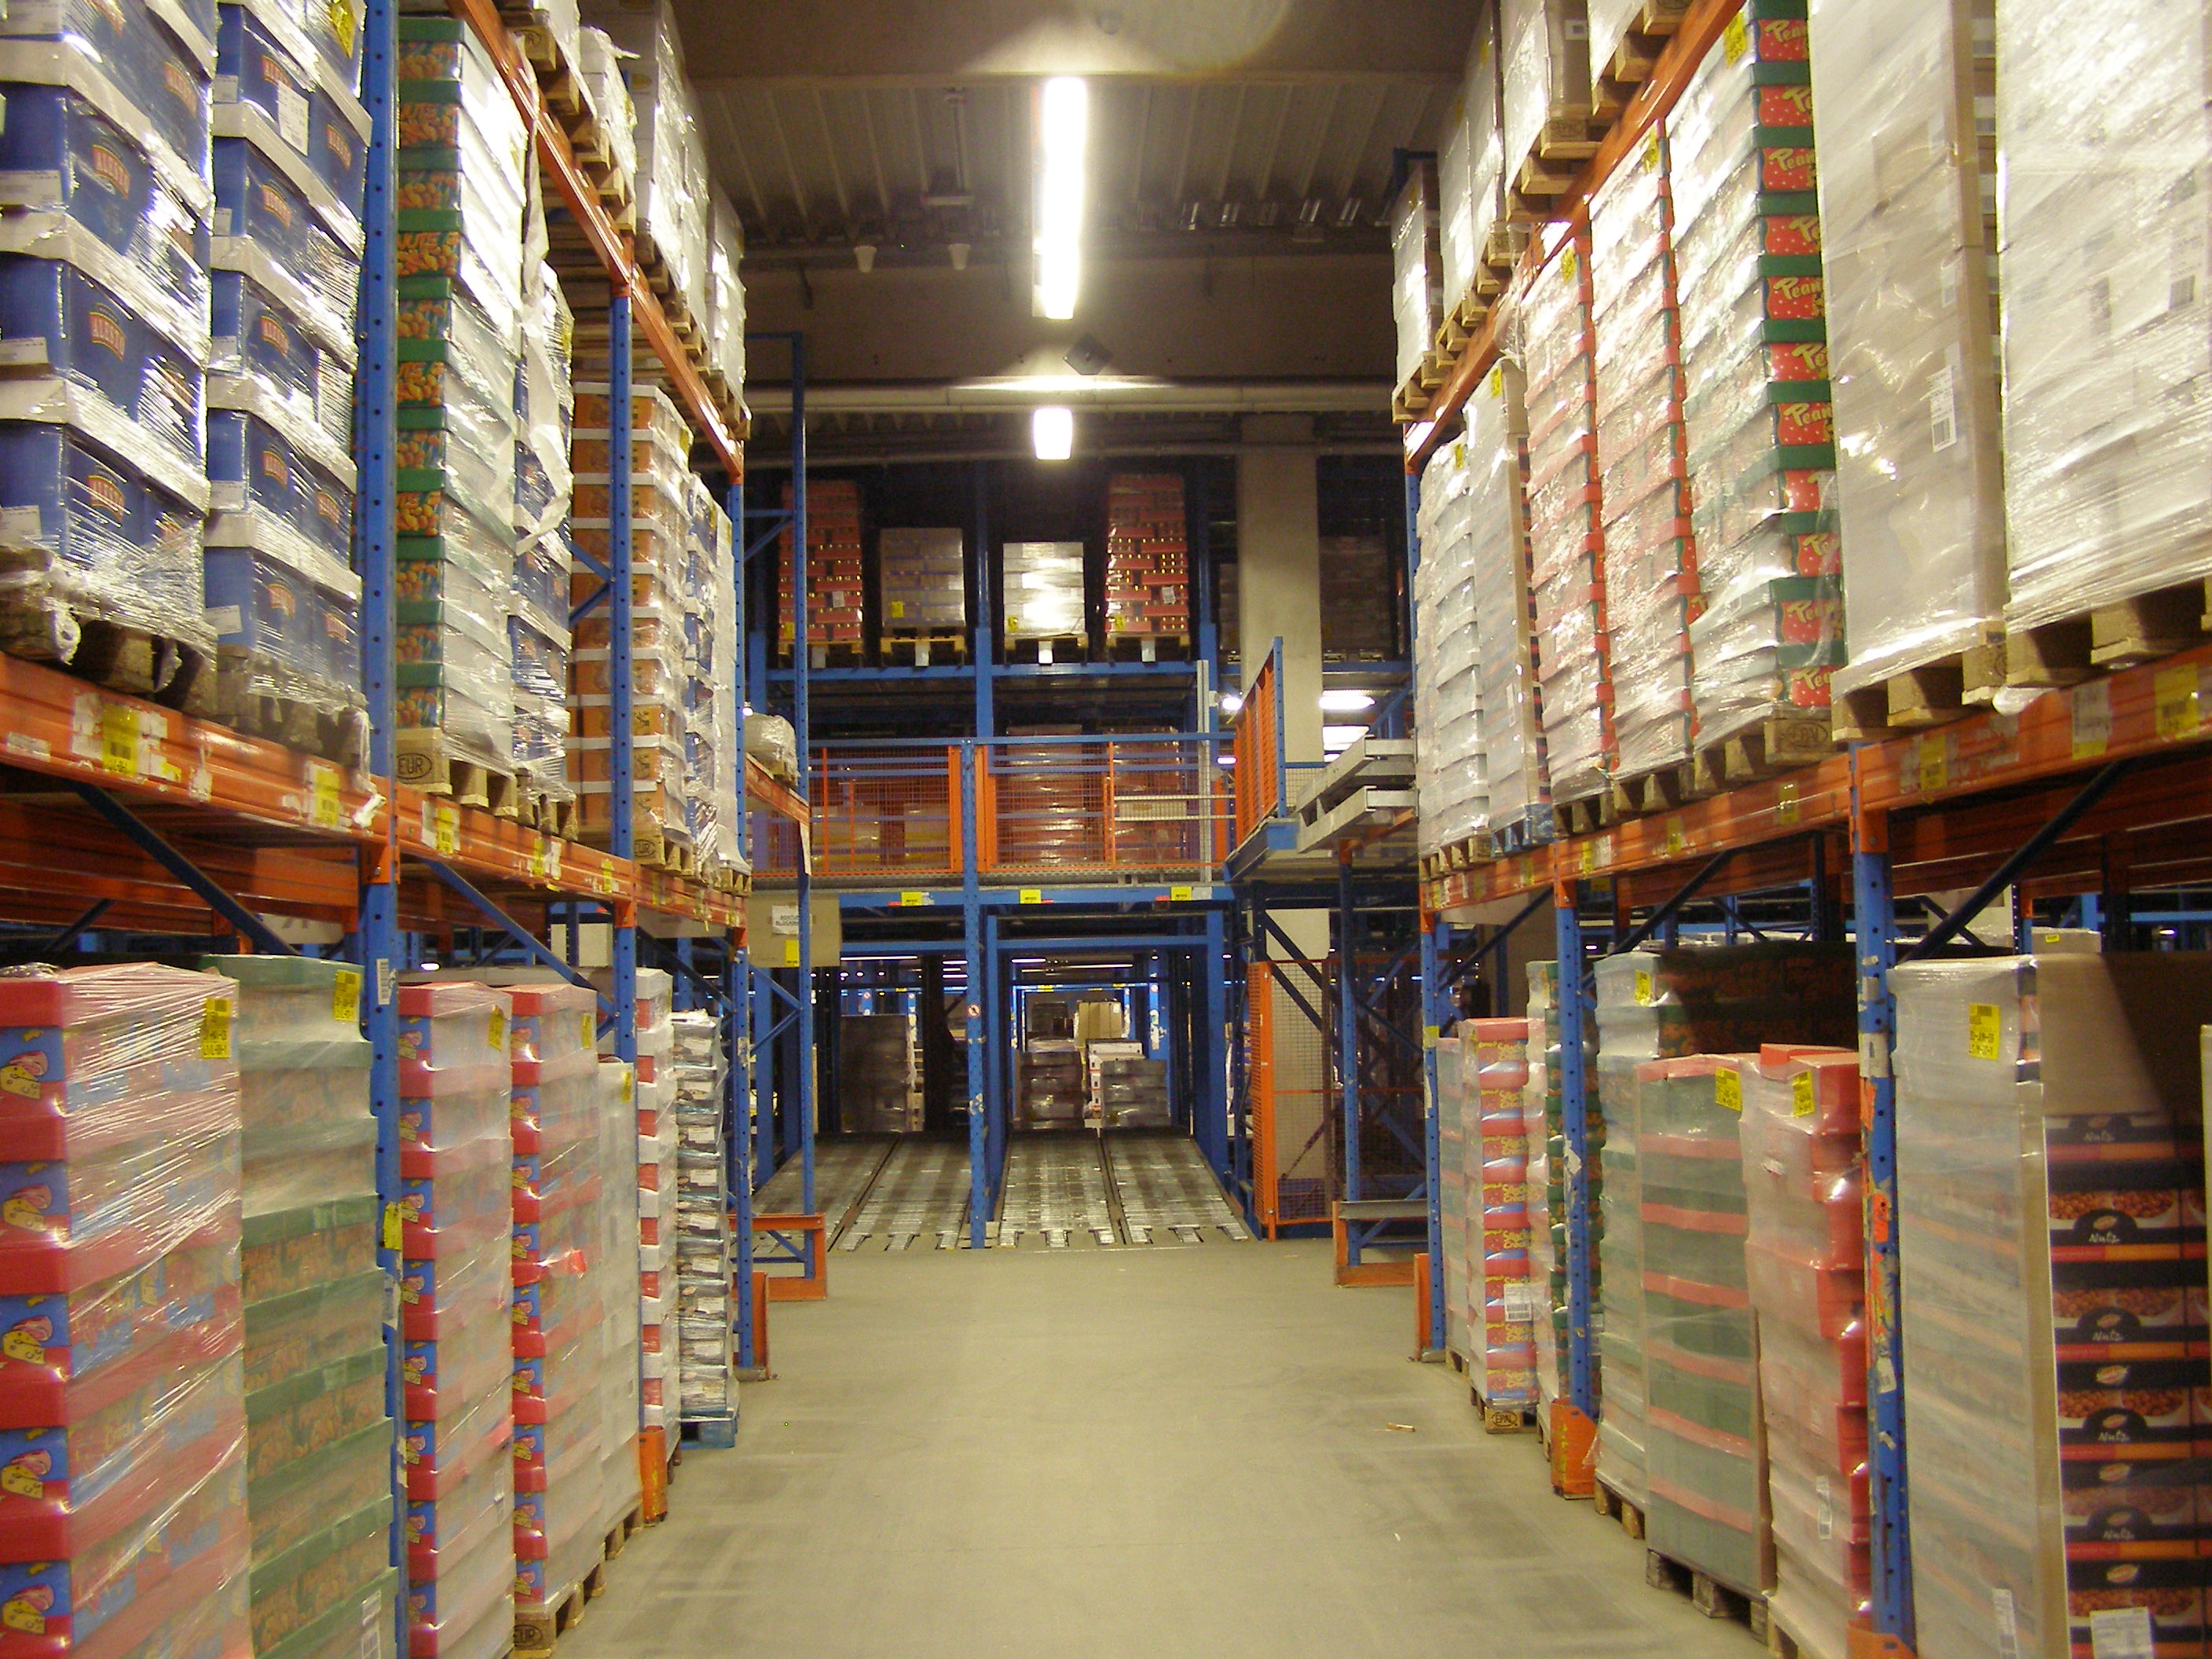 WLAN coverage in cold storage logistics